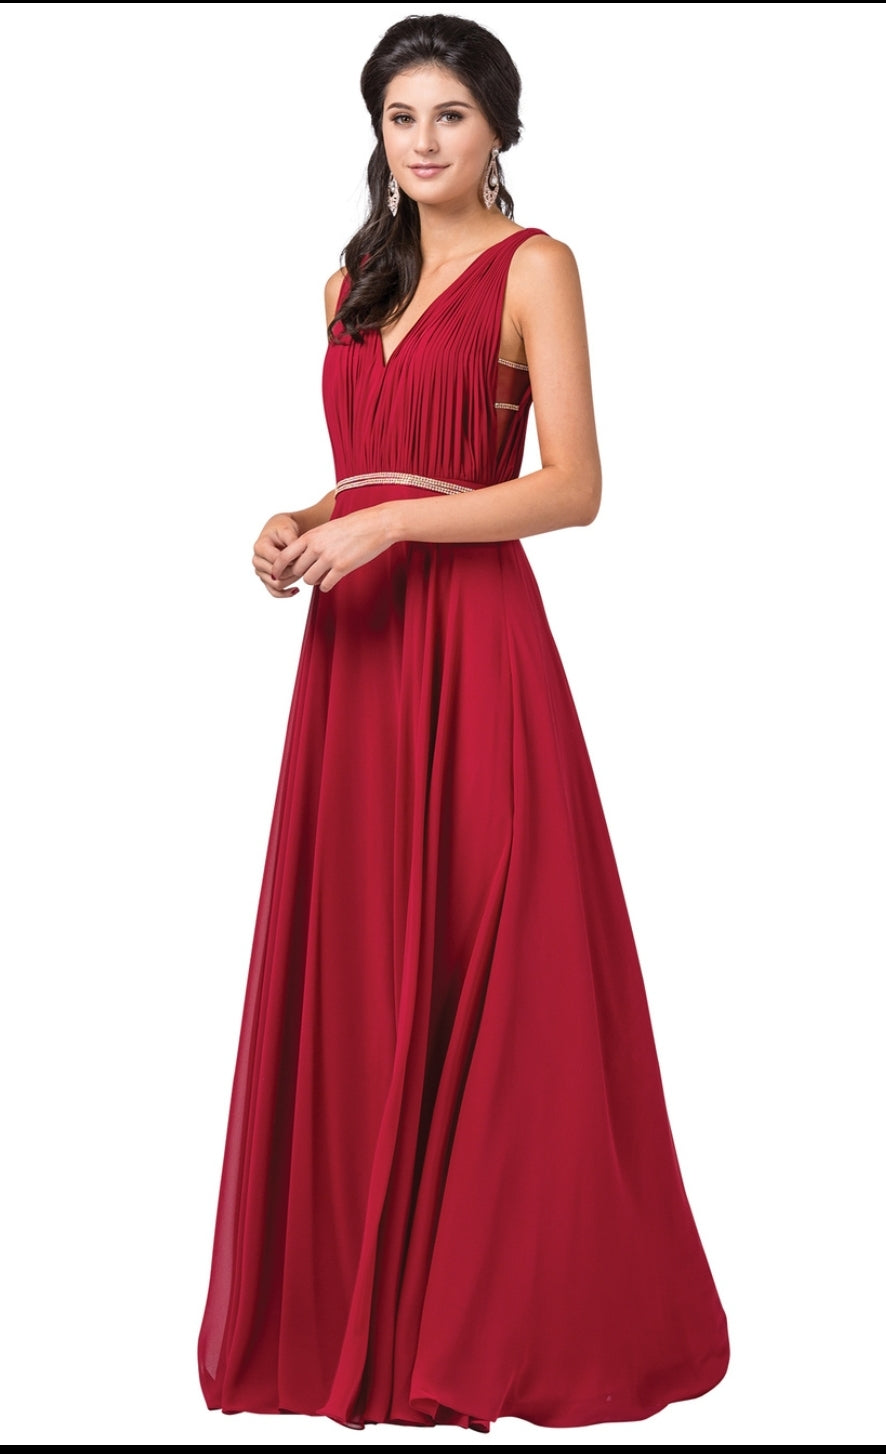 2588 Prom Dress Size XS Burgundy